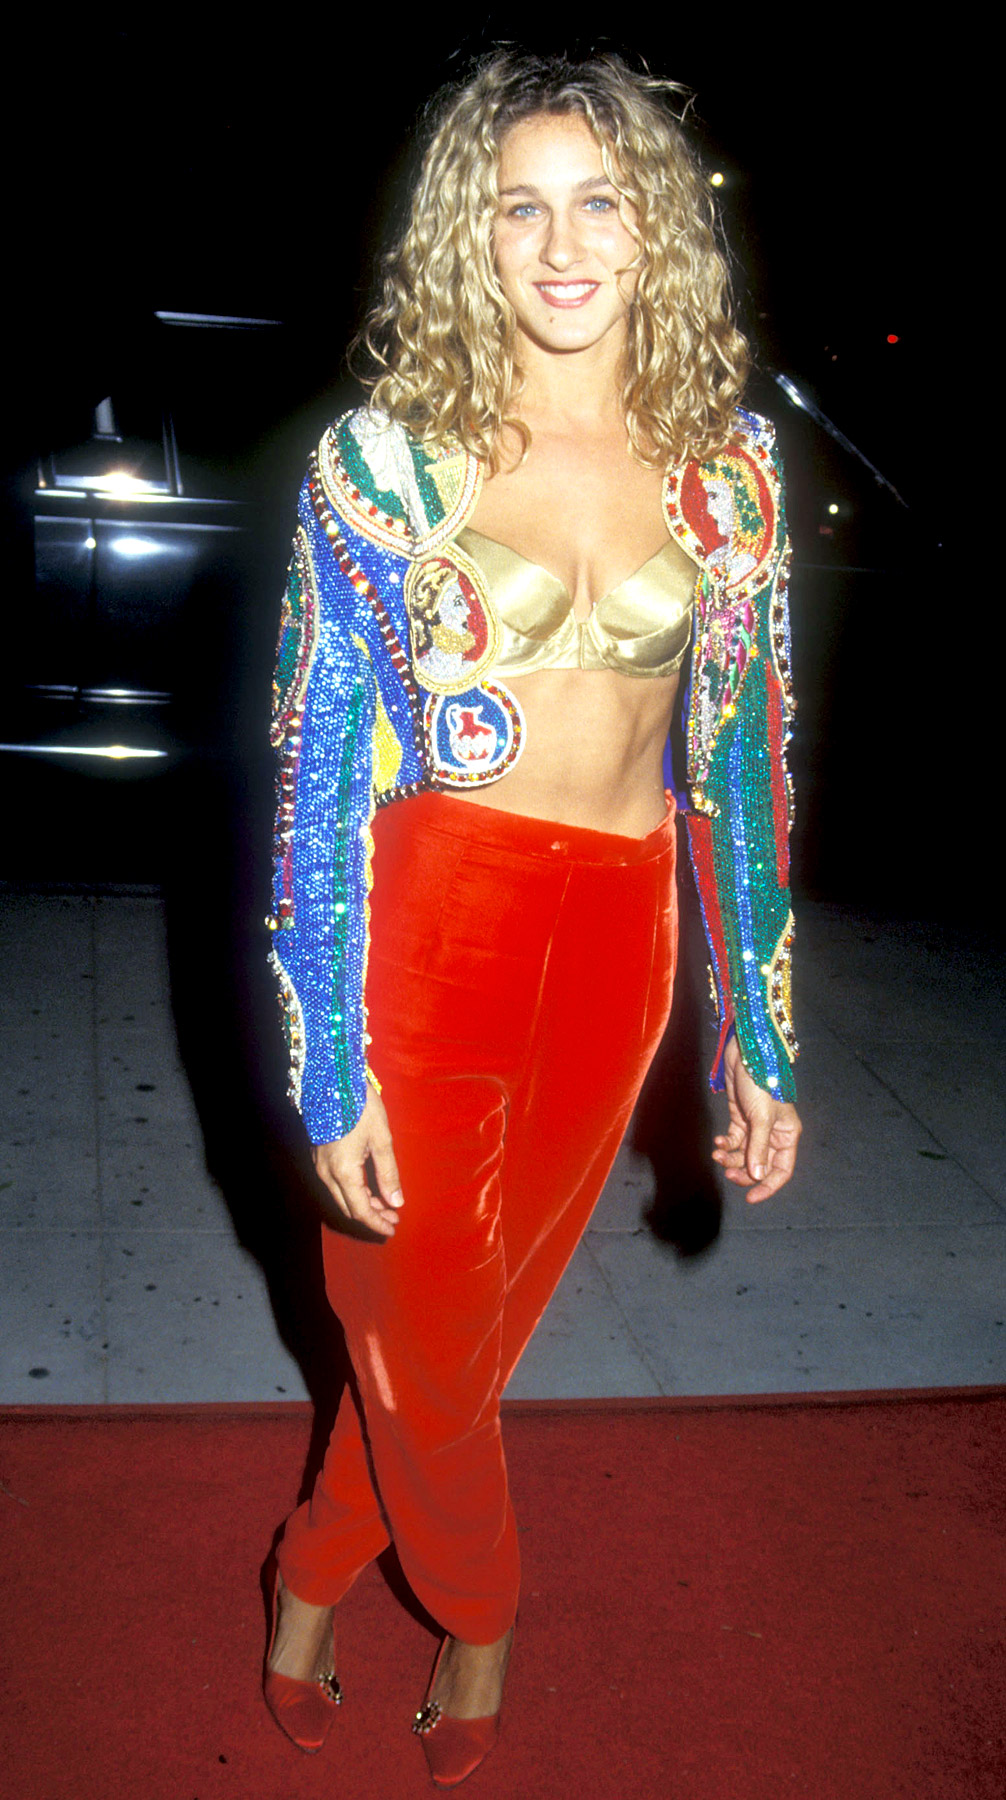 At the For the Boys Los Angeles premiere on Nov. 14, 1991, Parker amped up her sex appeal in a gold bra with red velour pants and an embellished jacket. Flashing her toned abs, she gave fans a sneak peek at her new sexy style.